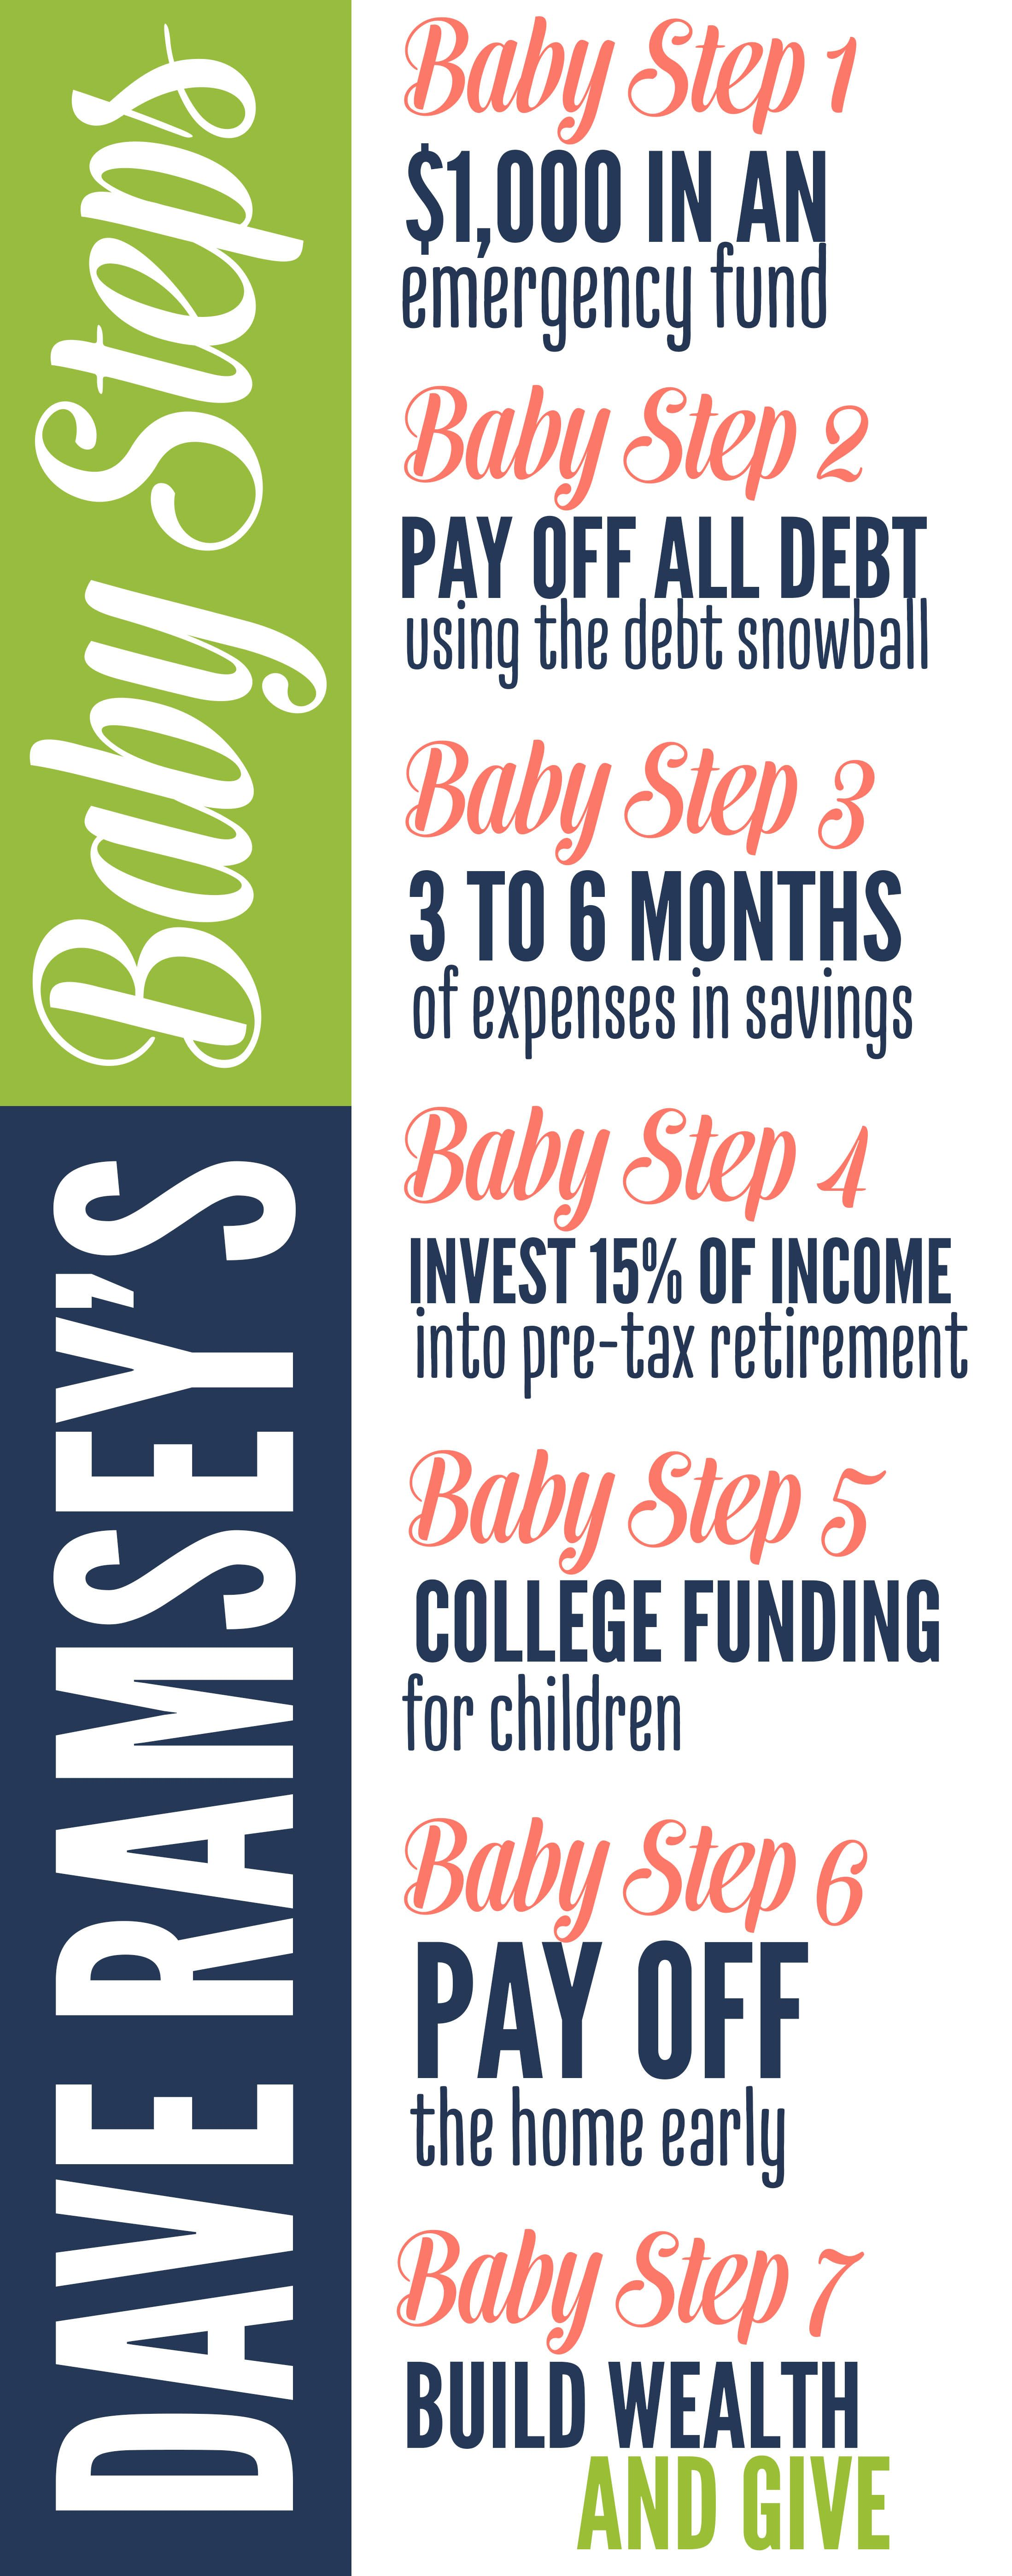 Our Budget After Going Debt Free | Baby steps, Babies and Budgeting